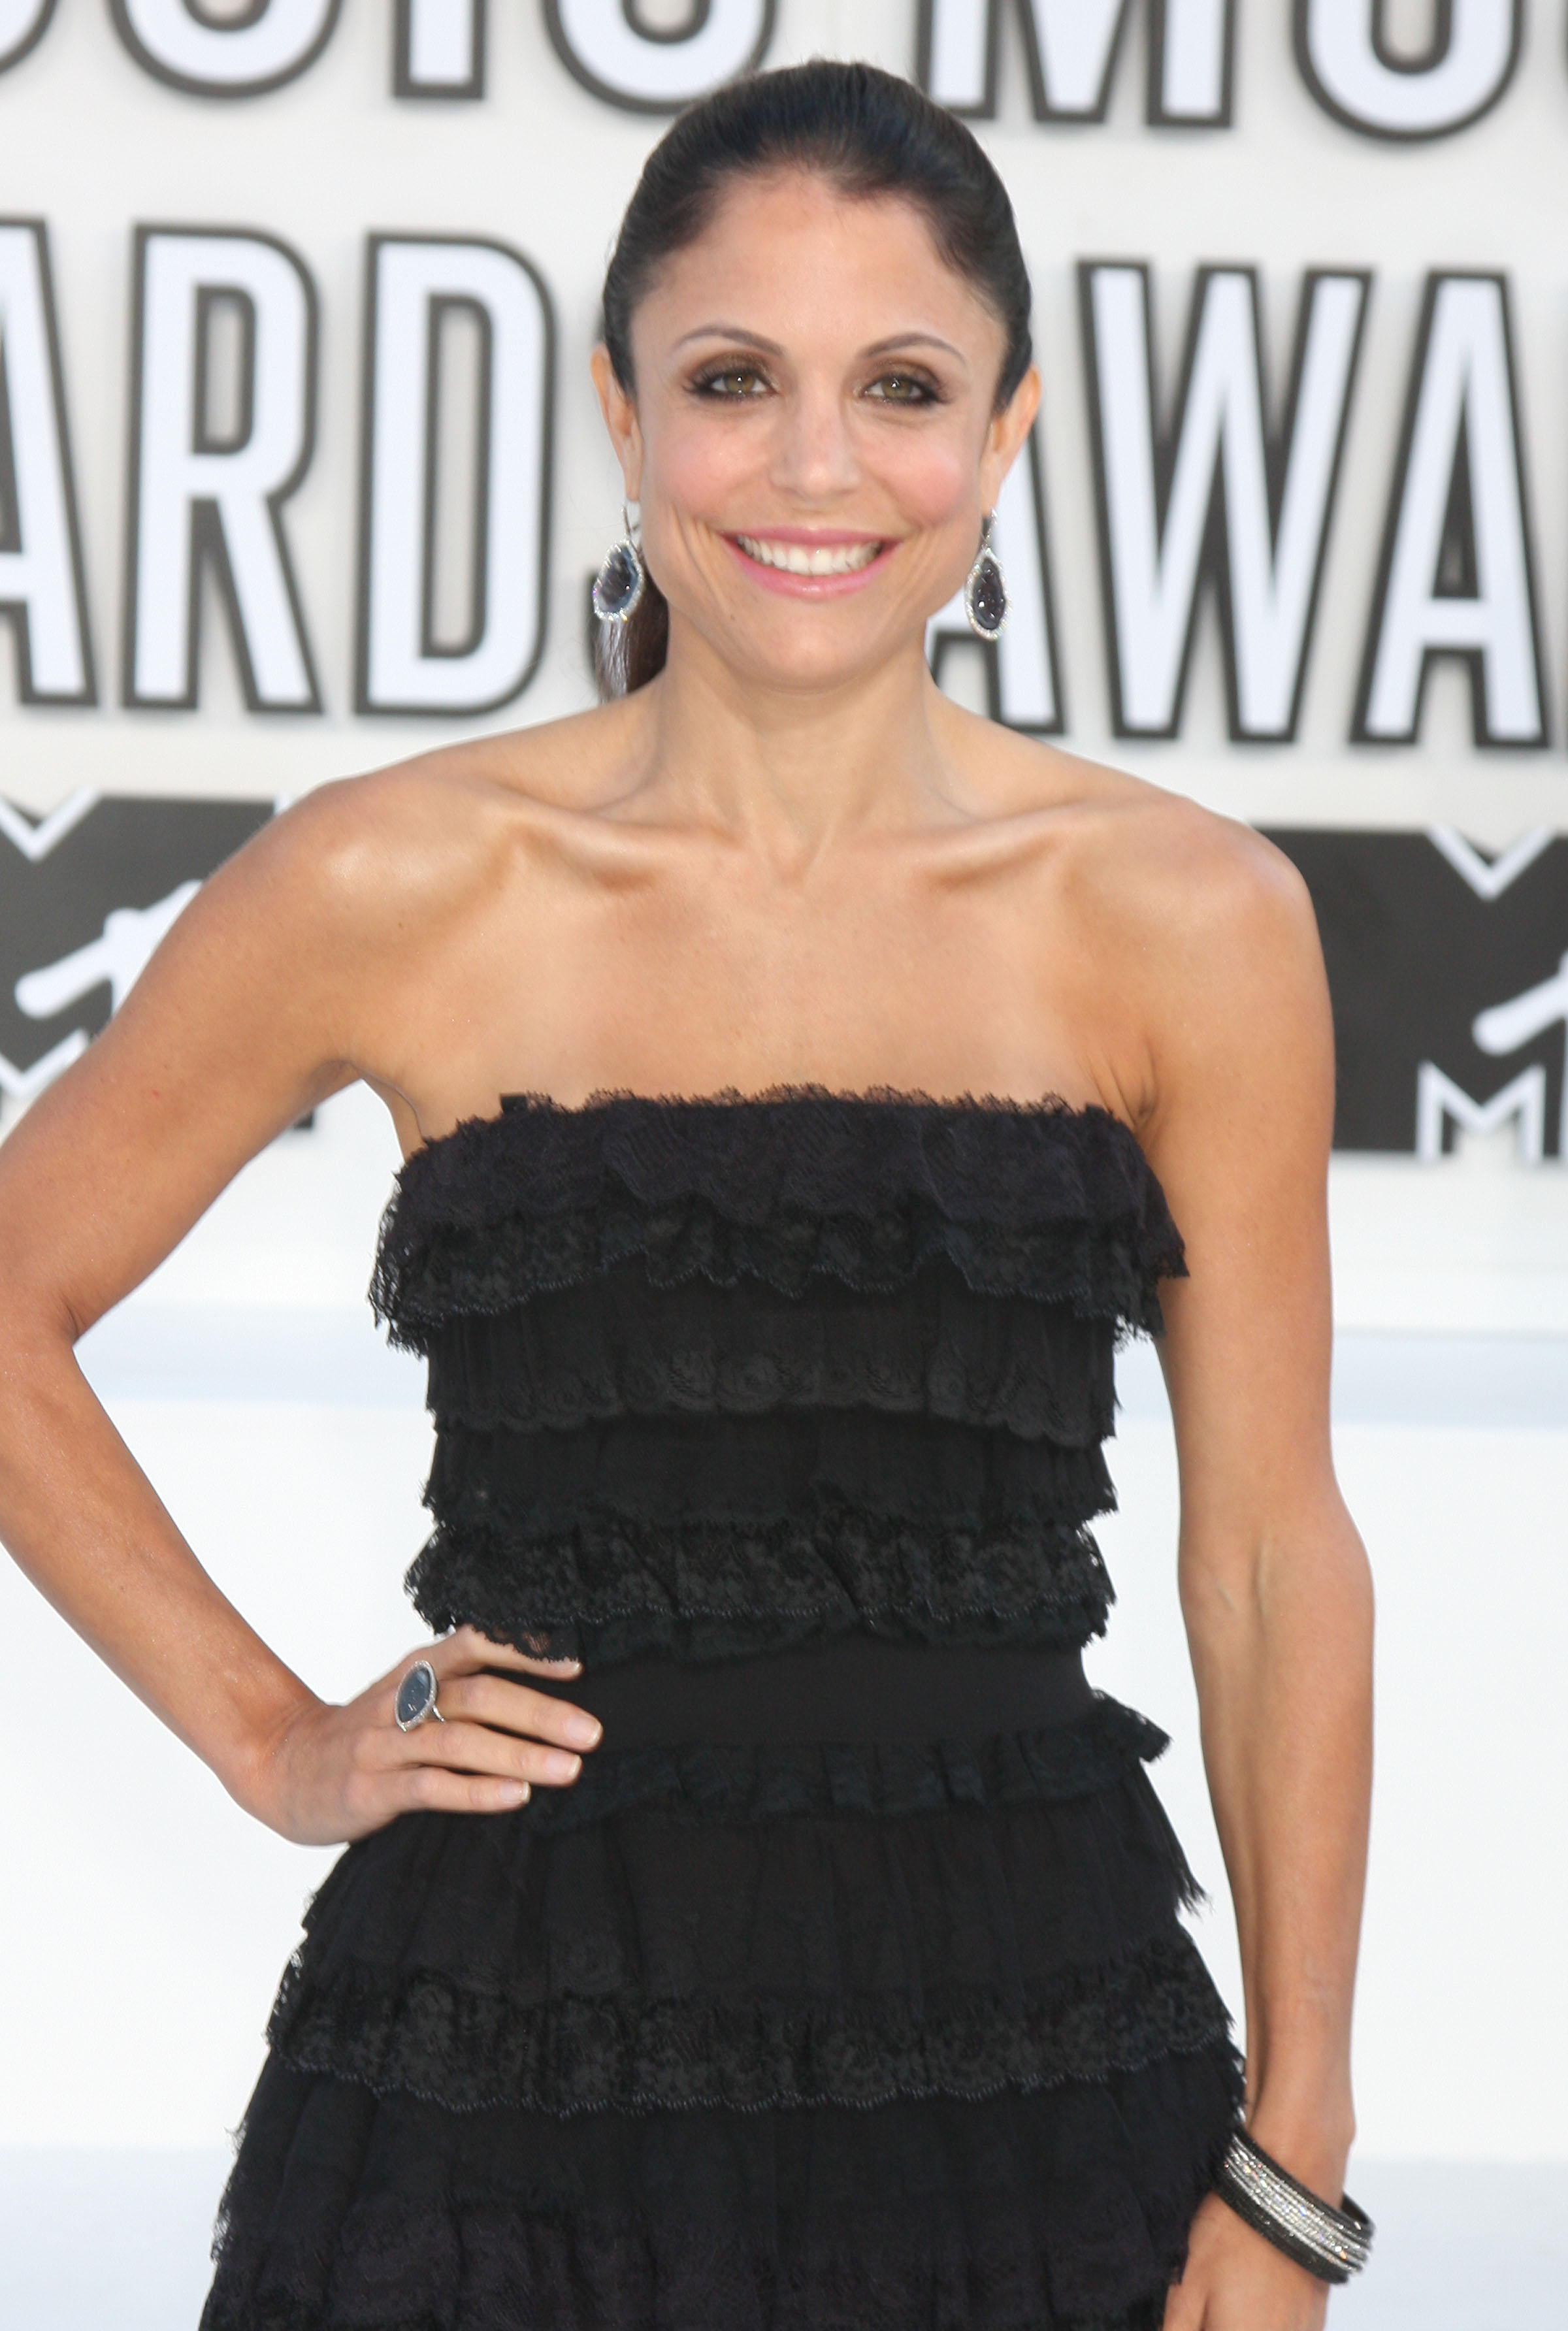 DC Bethenny Frankel VMA2010 006 Monday's aren't so bad when gaps